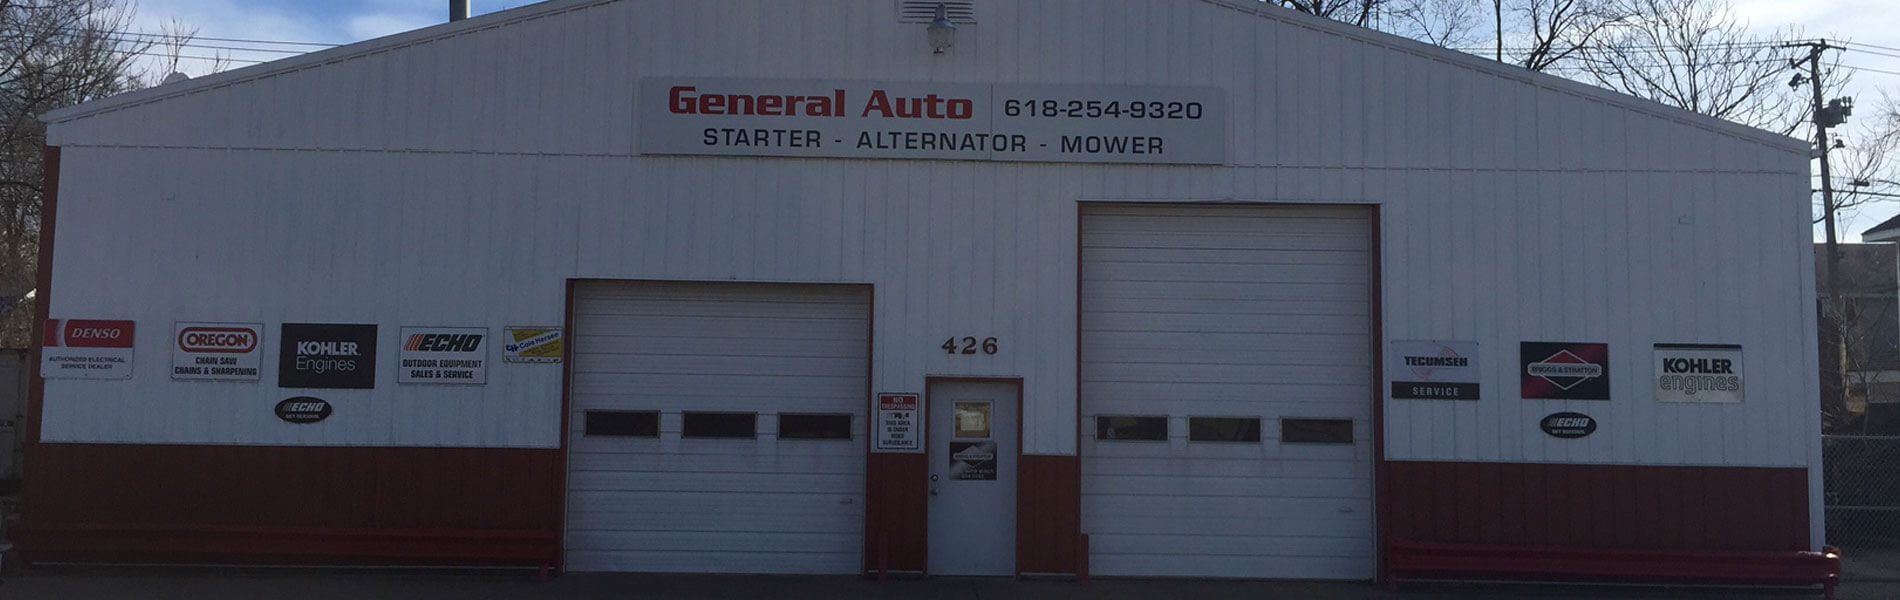 Alternator Repair Shop in Wood River IL